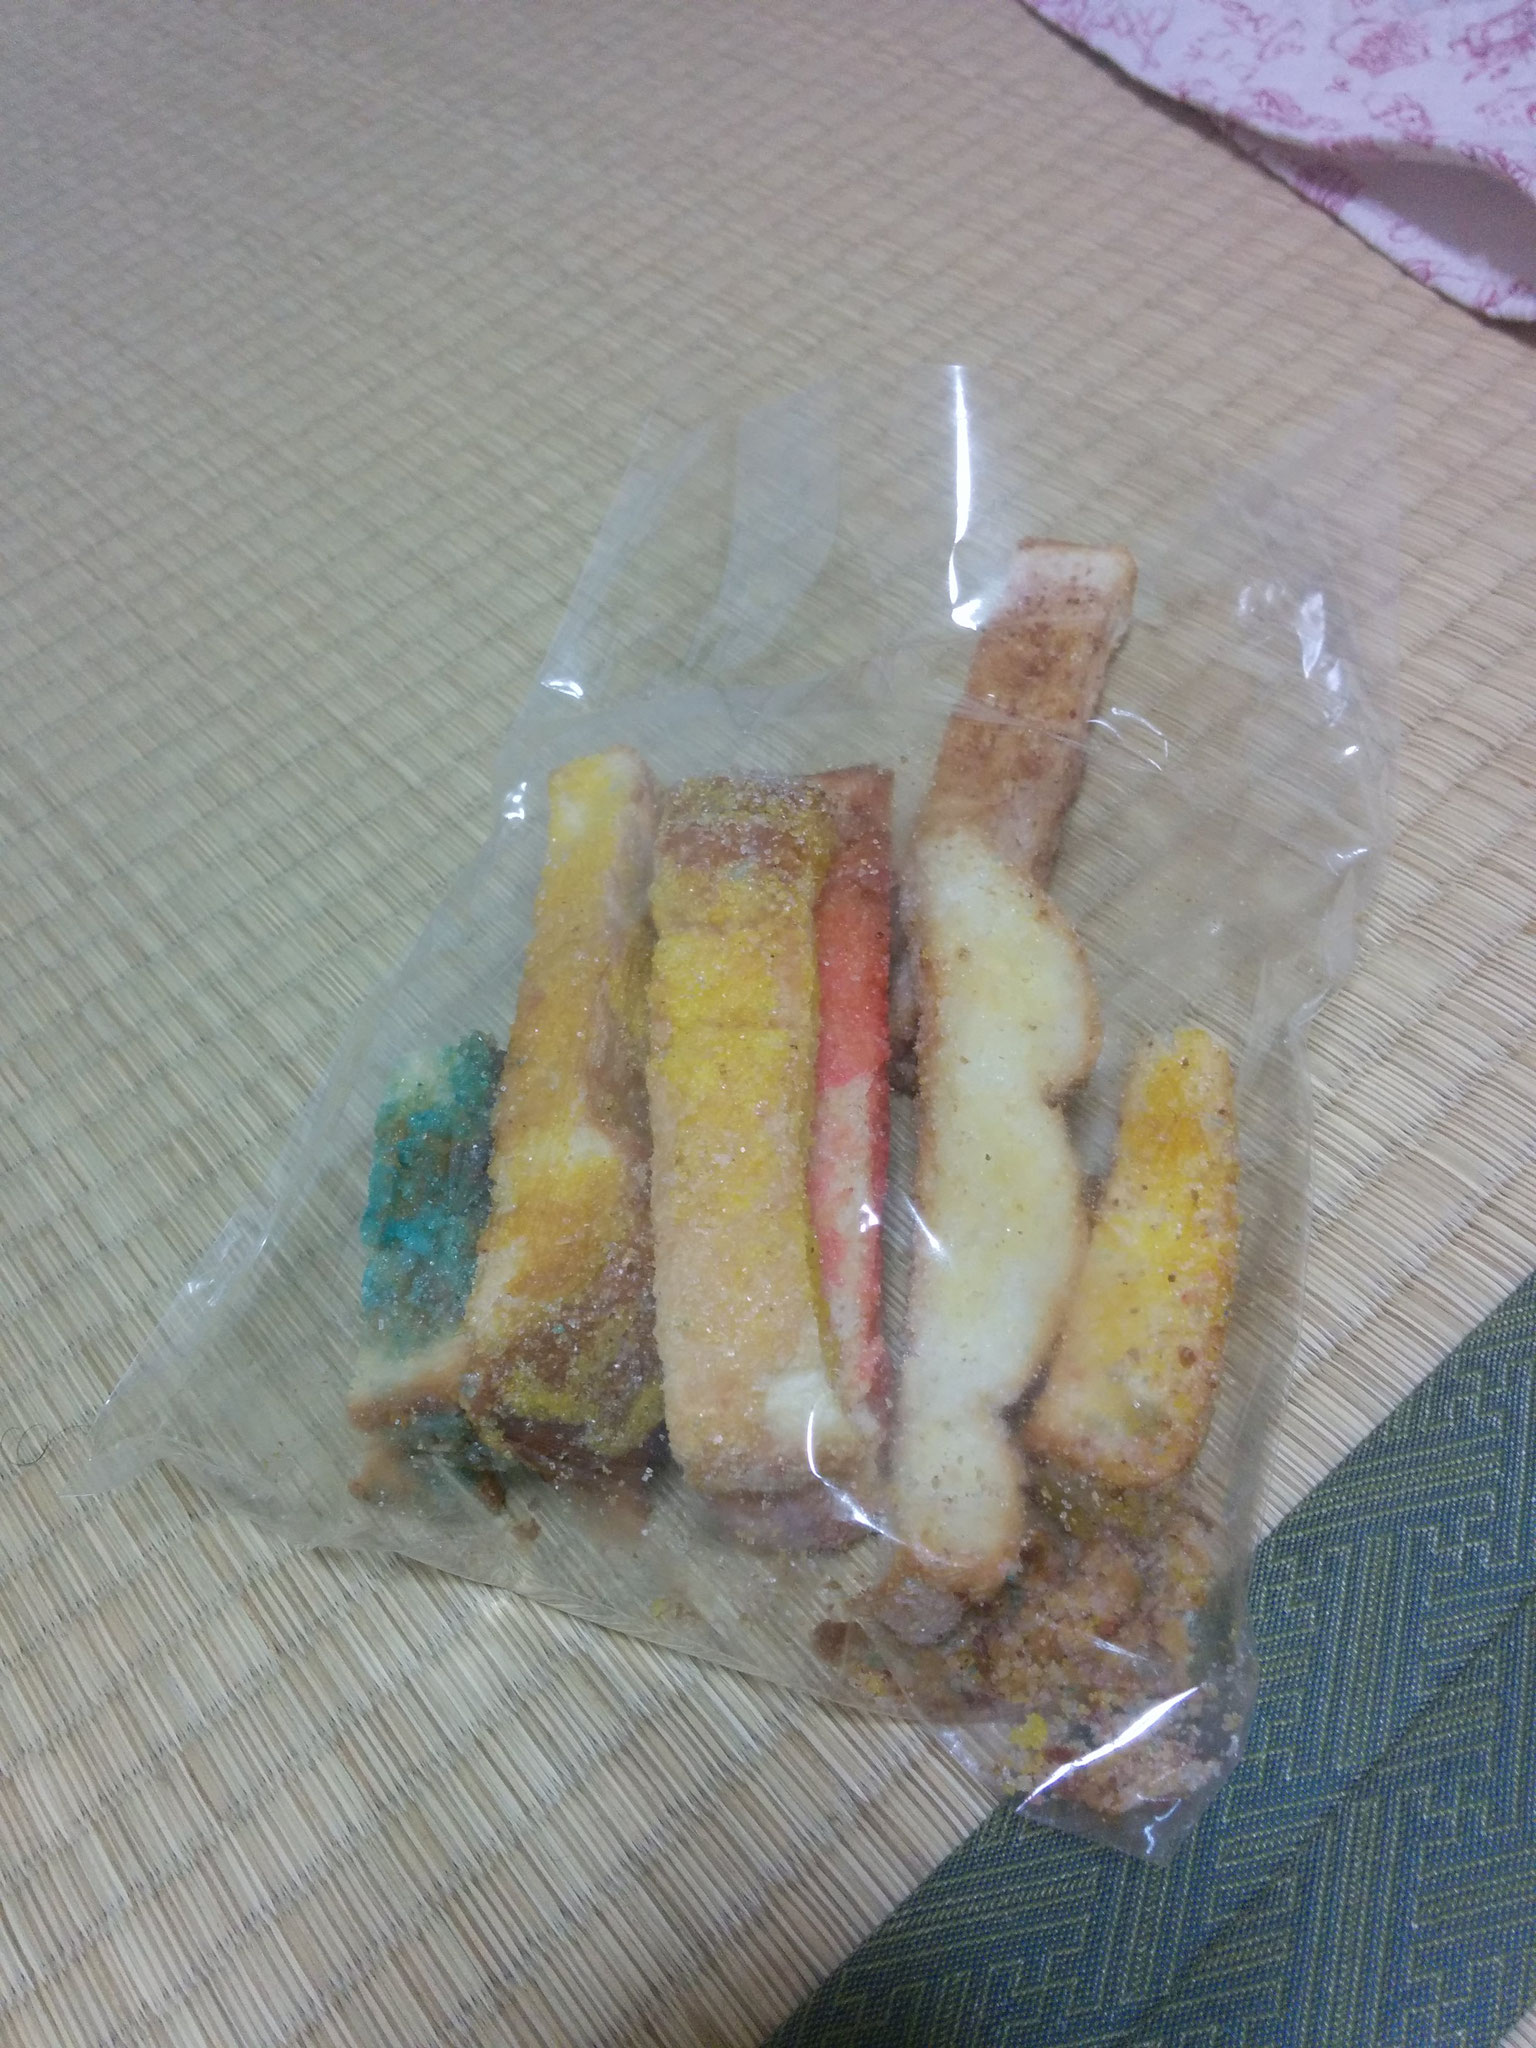 2 My friend made me rusk <3